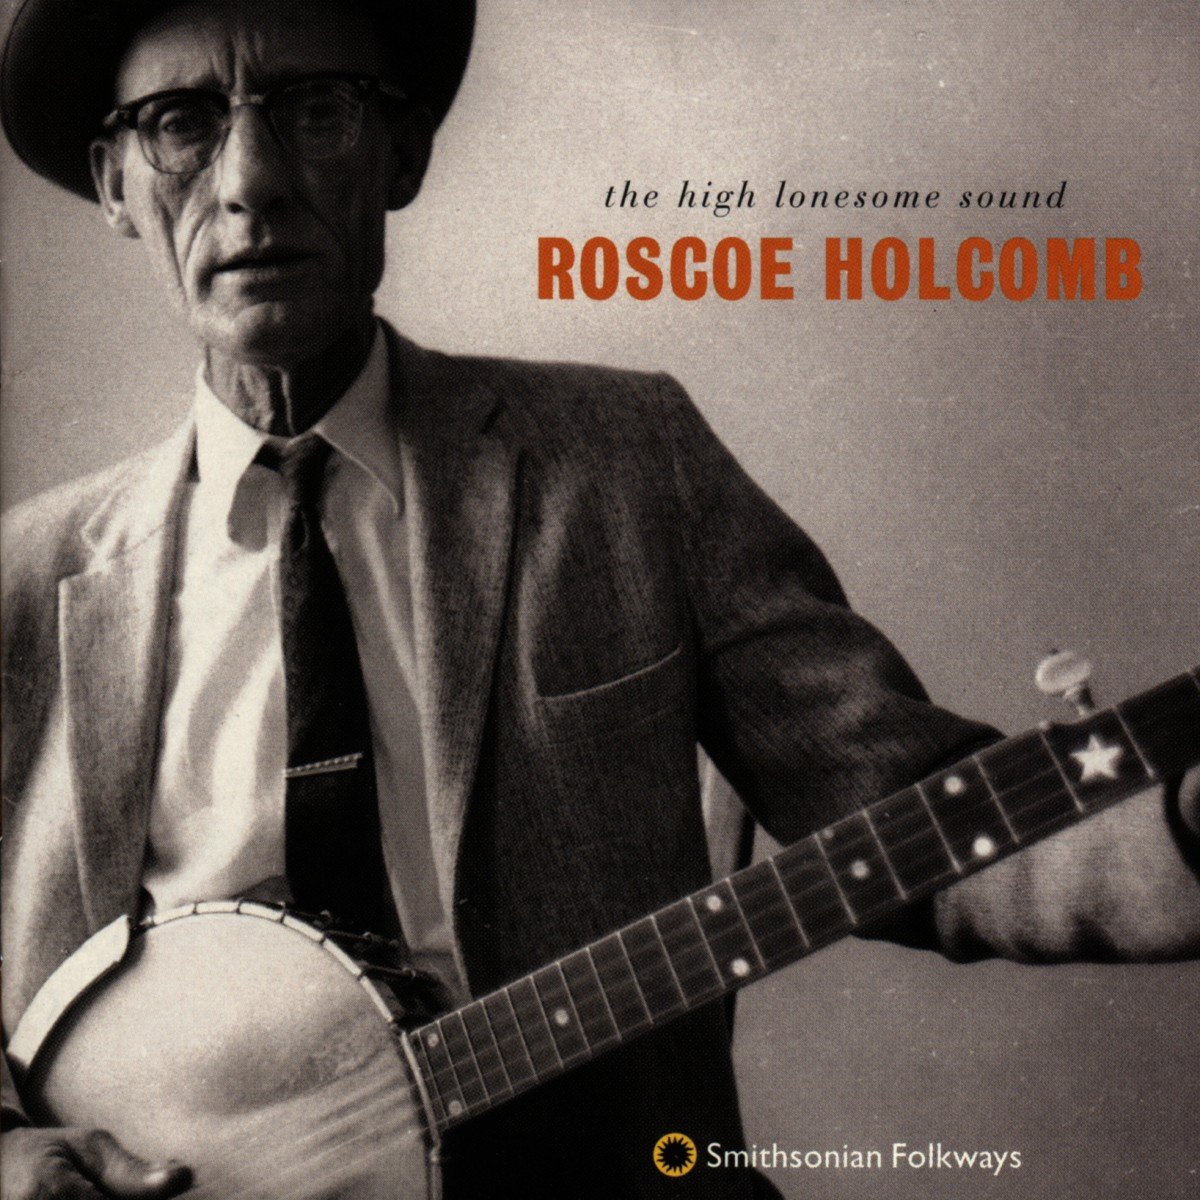 High Lonesome Sound by Smithsonian Folkways